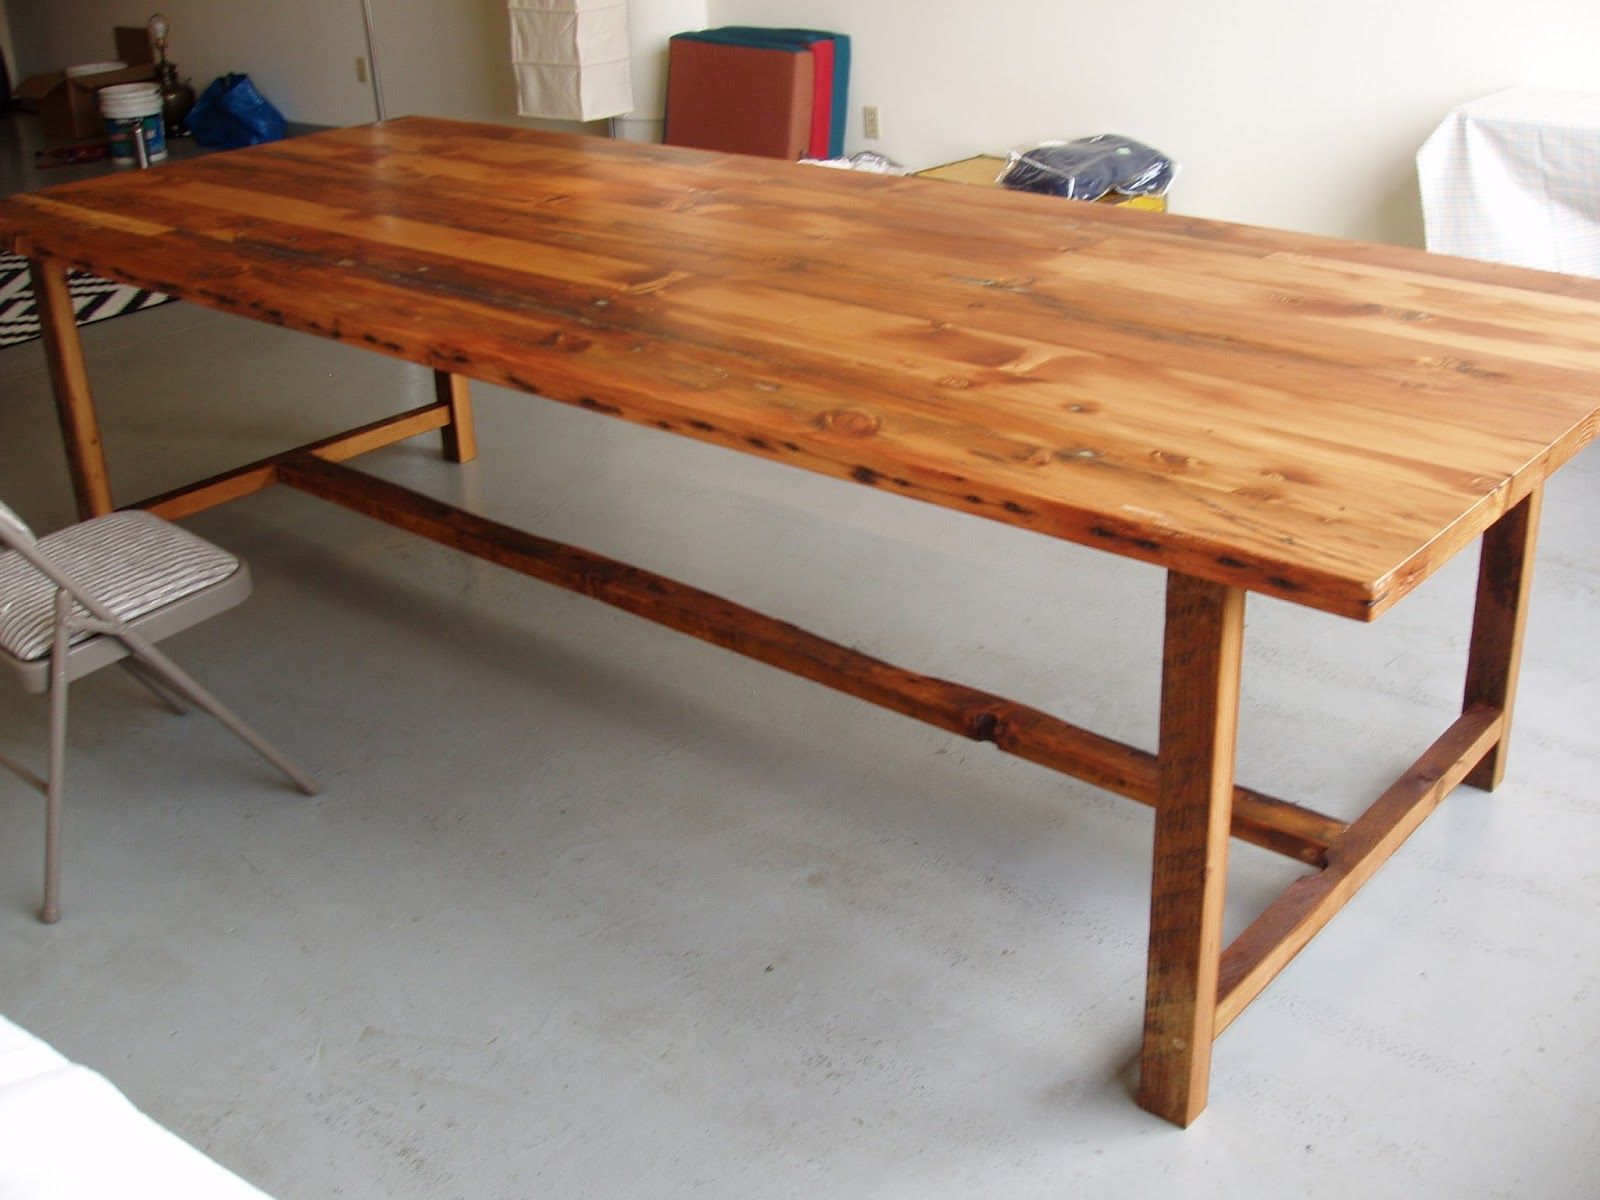 10 Foot Long By 48 Inch Wide Wood Dining Table